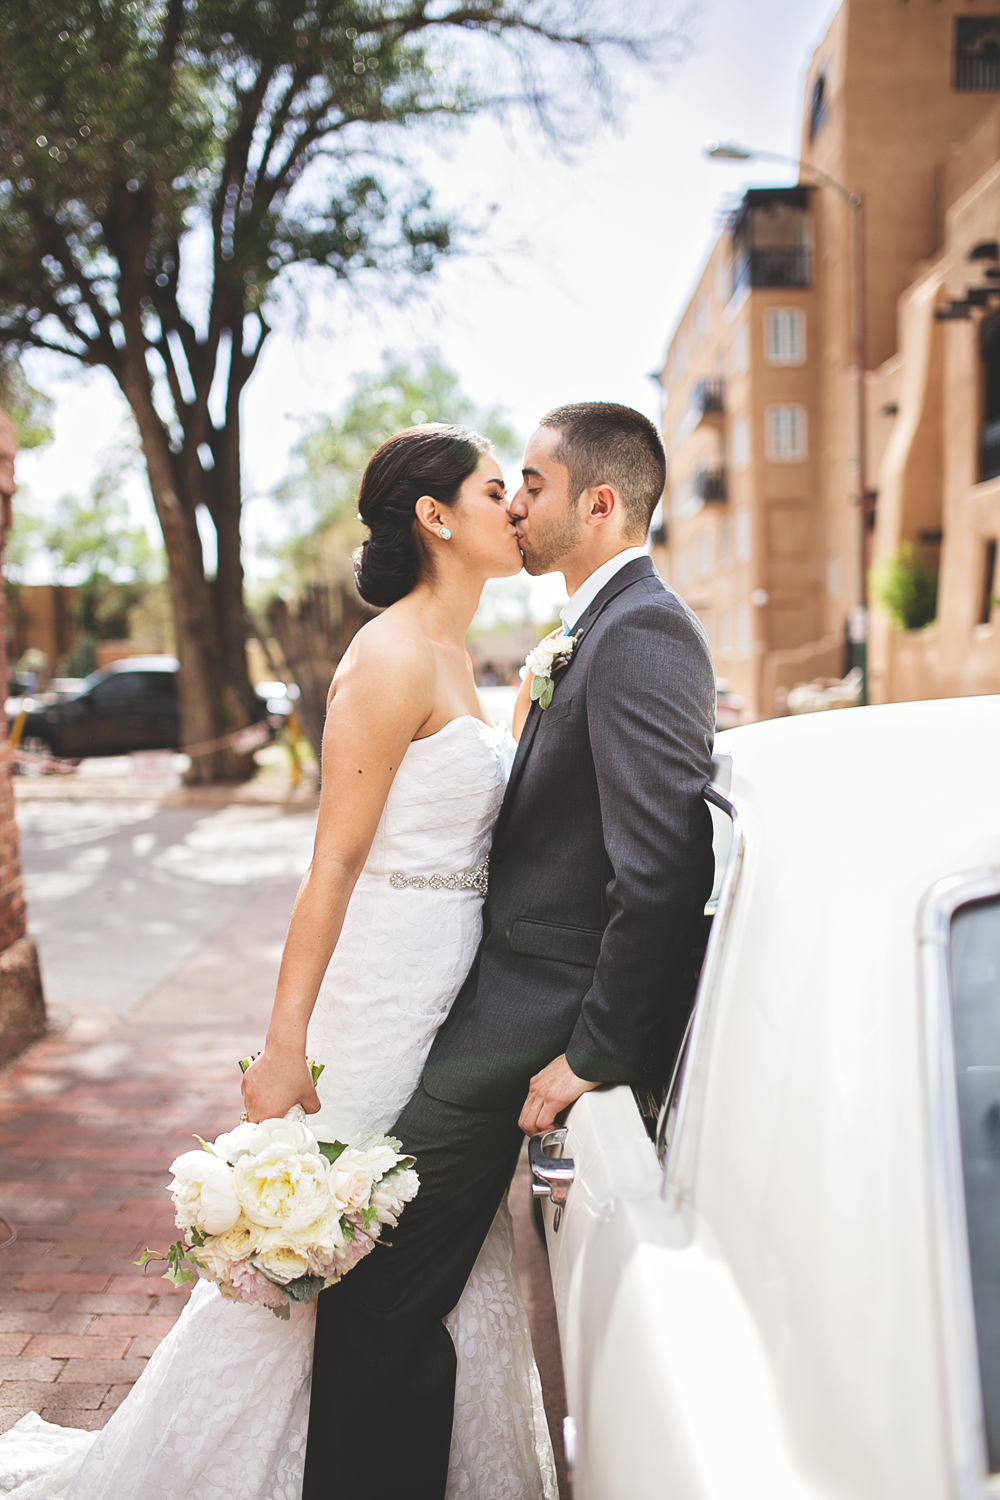 Santa Fe Wedding | La Fonda Hotel | Liz Anne Photography 41.jpg